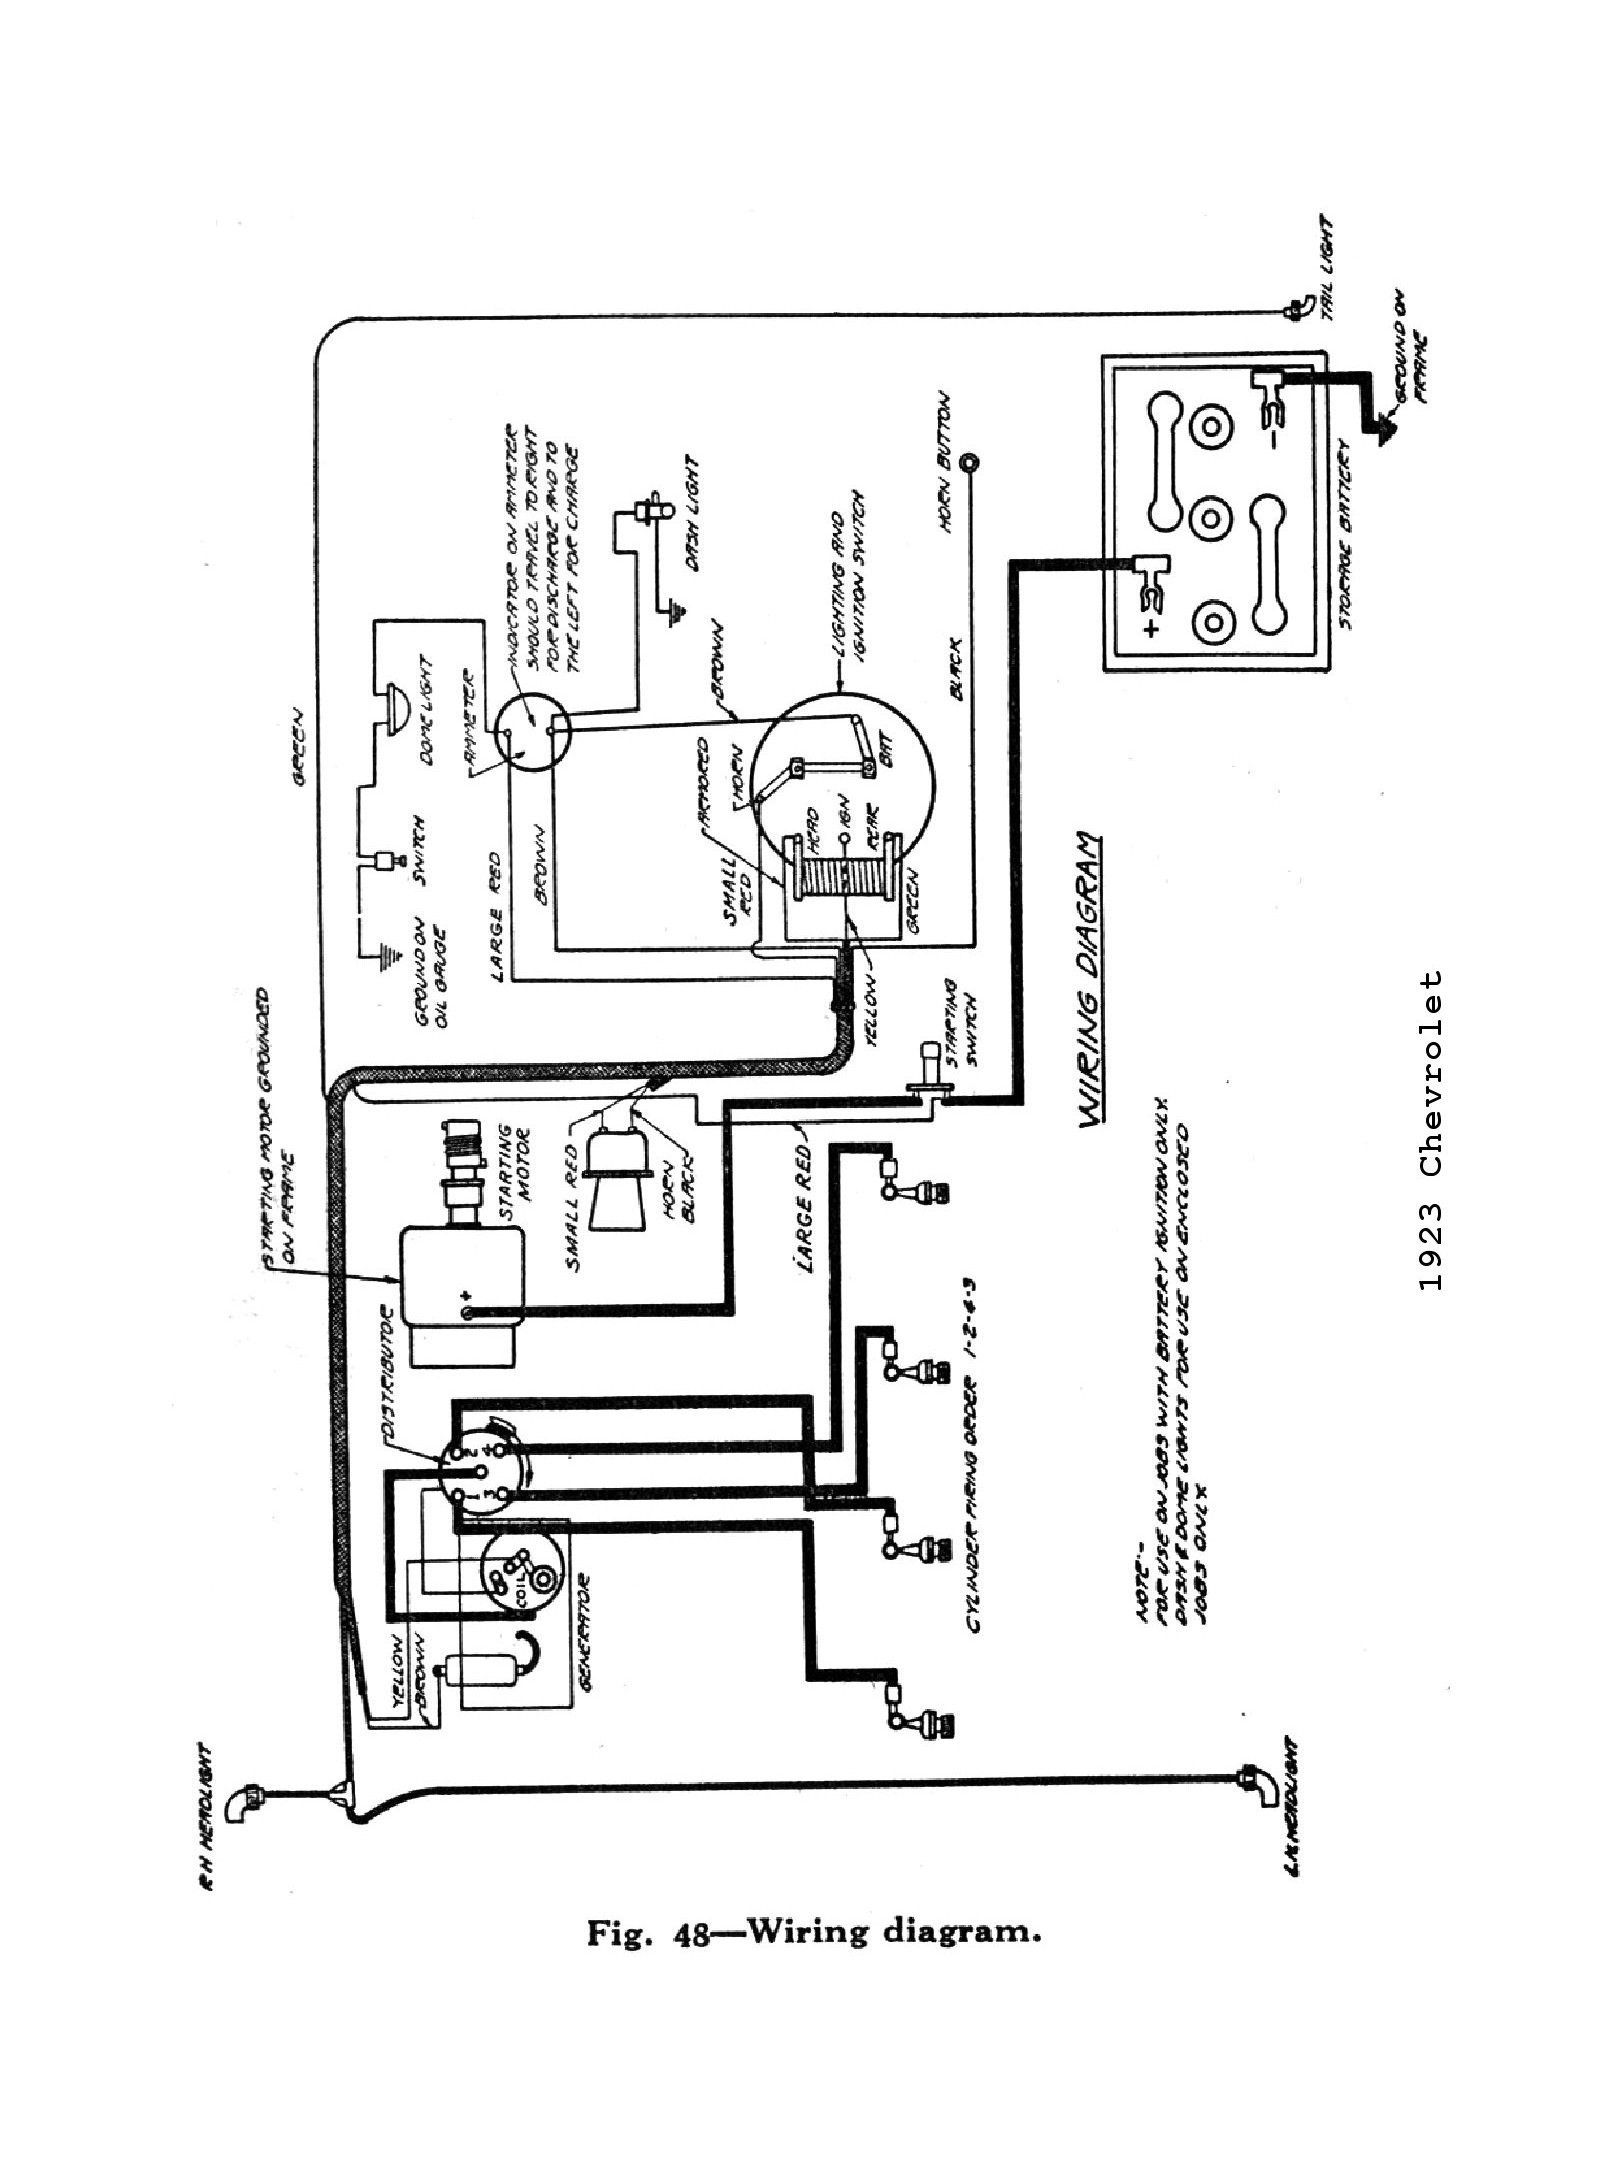 hight resolution of 1967 chevy impala gas gauge wiring diagram wiring diagram u2022 62 impala wiring diagram 1967